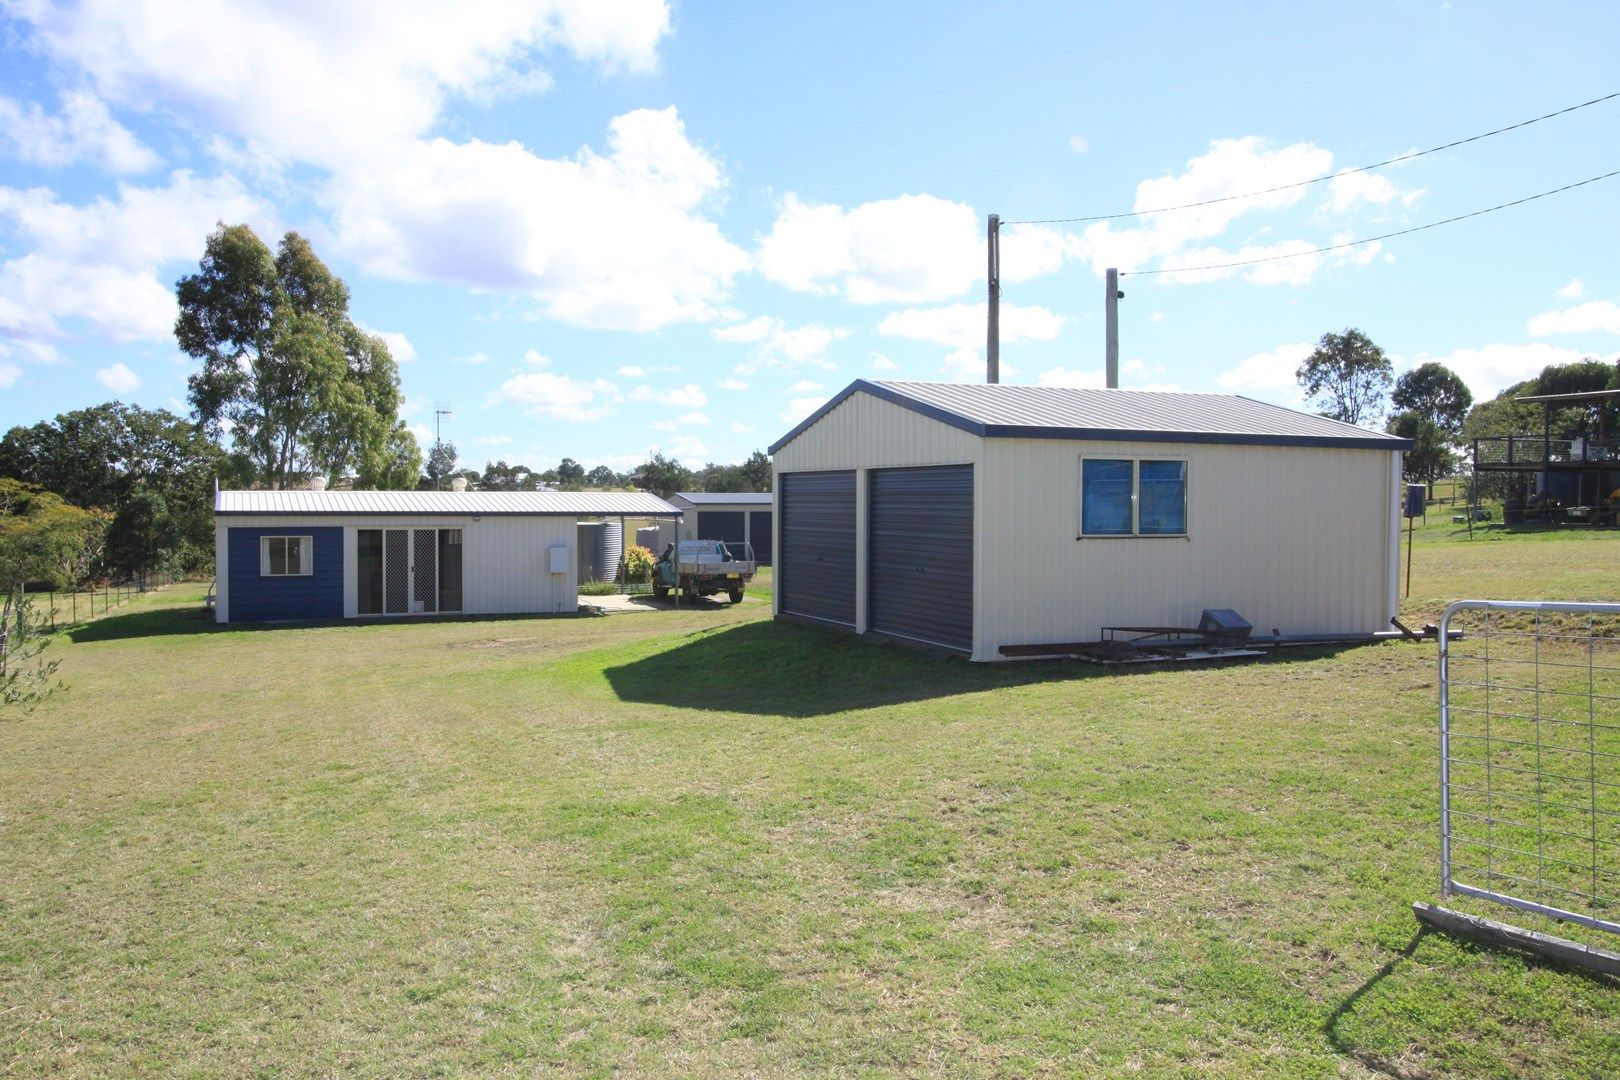 12 RIPPINGALE STREET, Moffatdale QLD 4605, Image 0